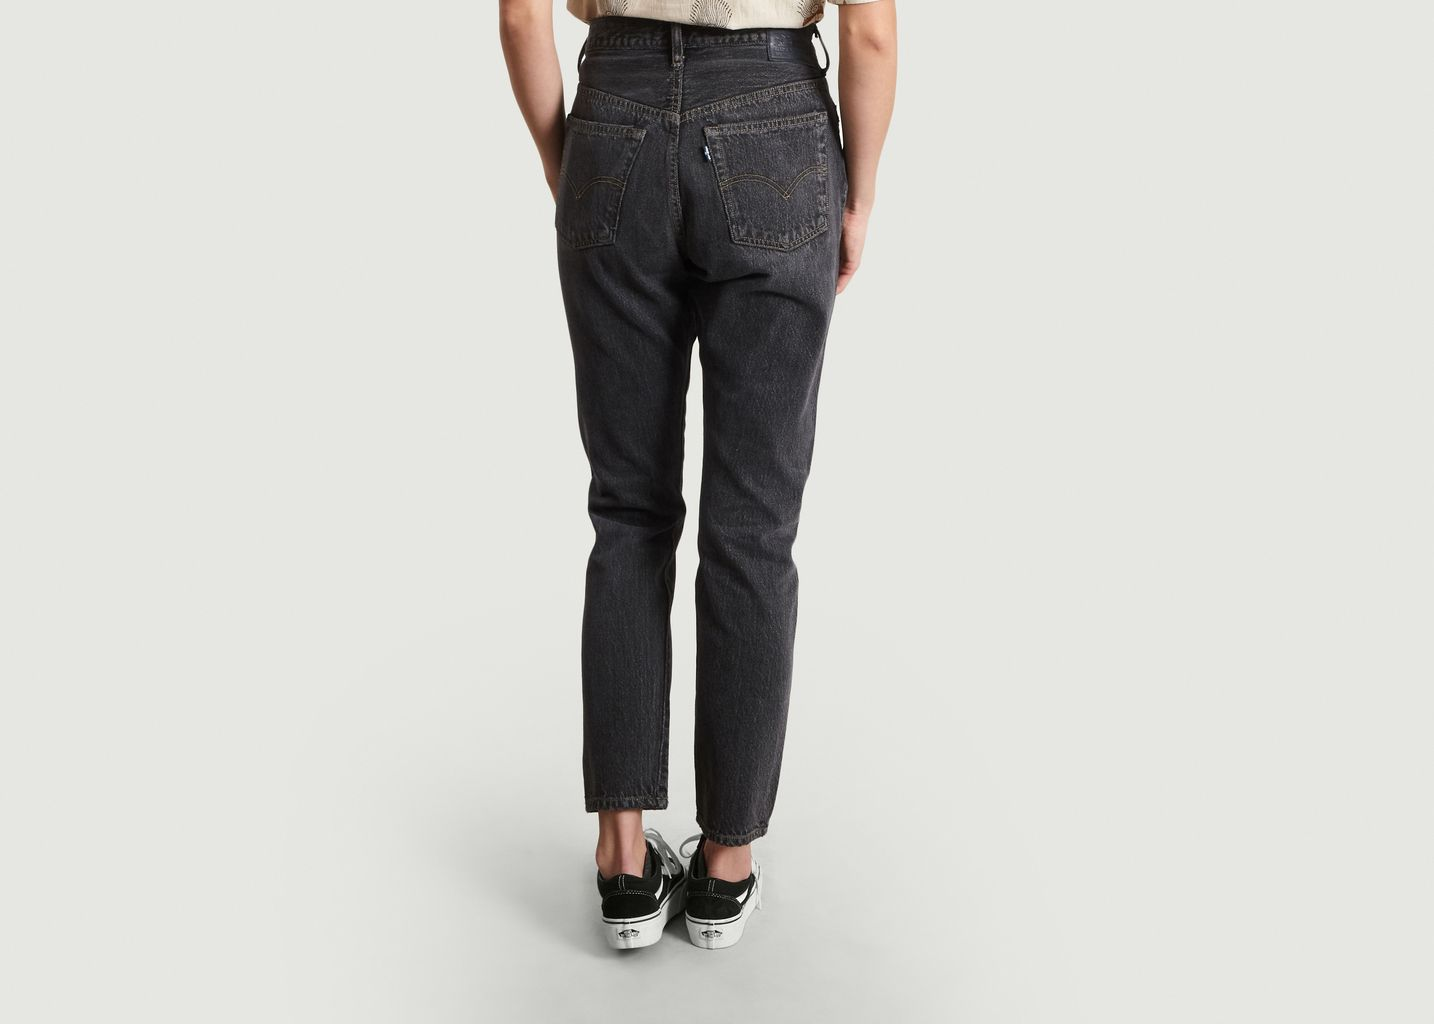 Jeans 501 Skinny - Levi's Made and Crafted